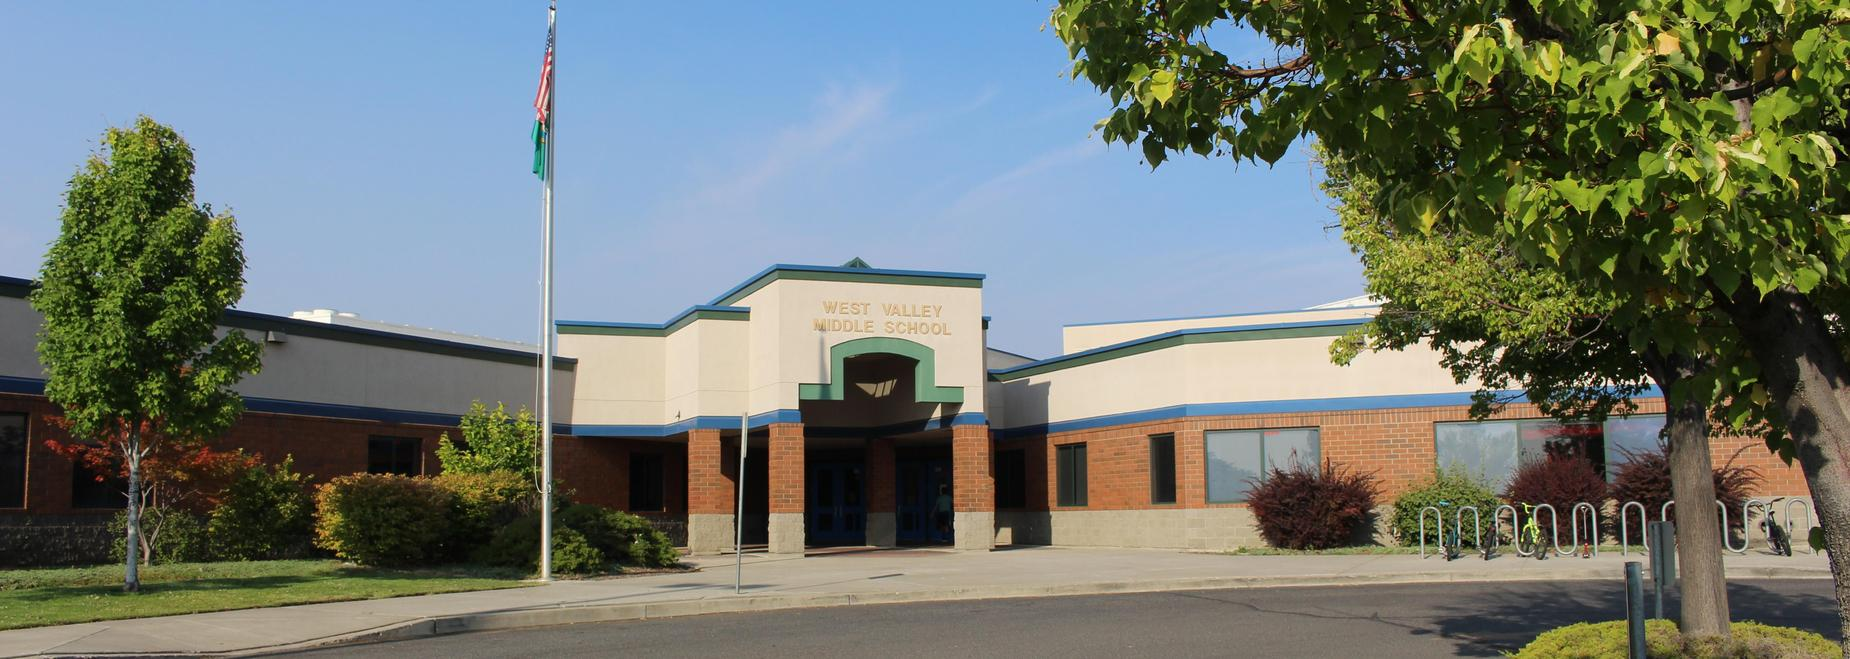 West Valley Middle School entrance